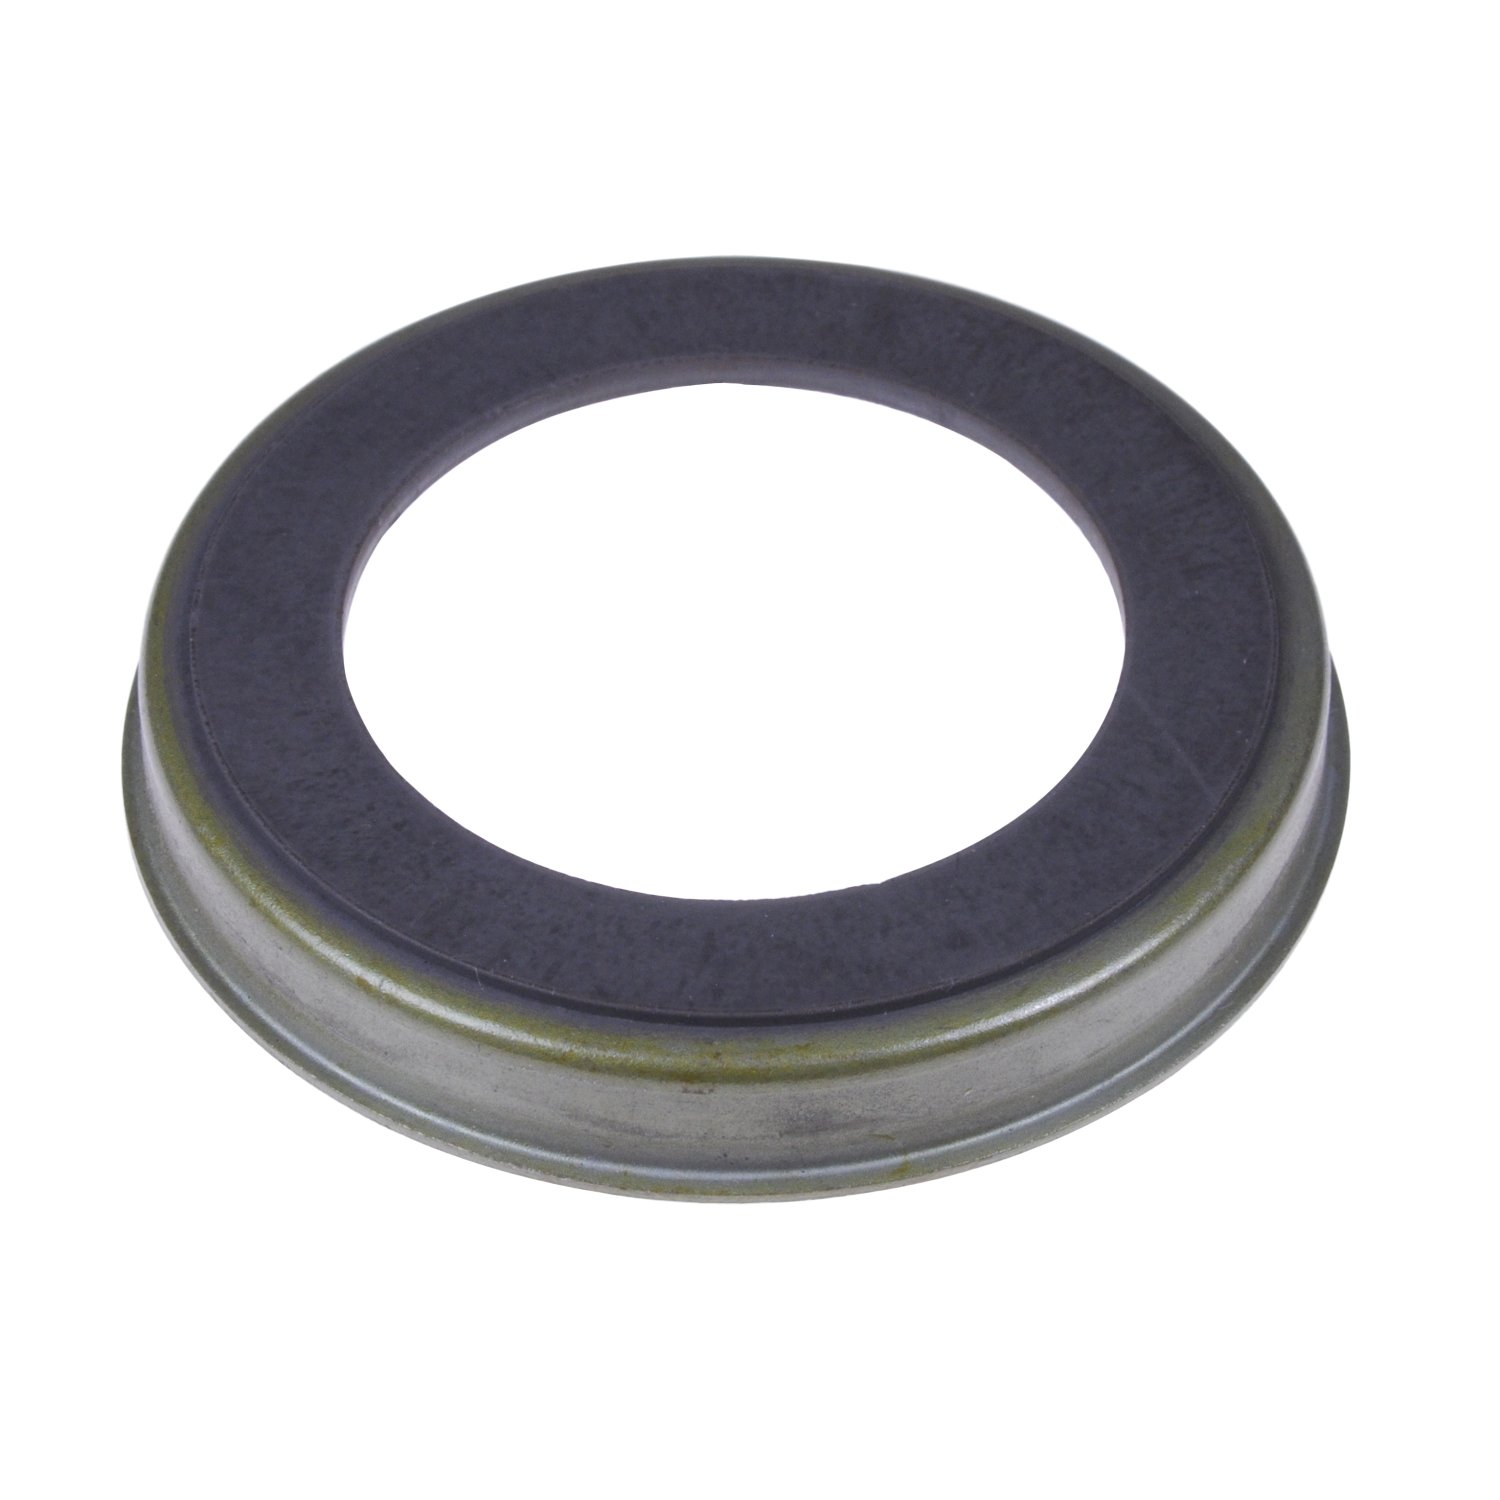 Blue Print ADM57106 ABS Ring, pack of one